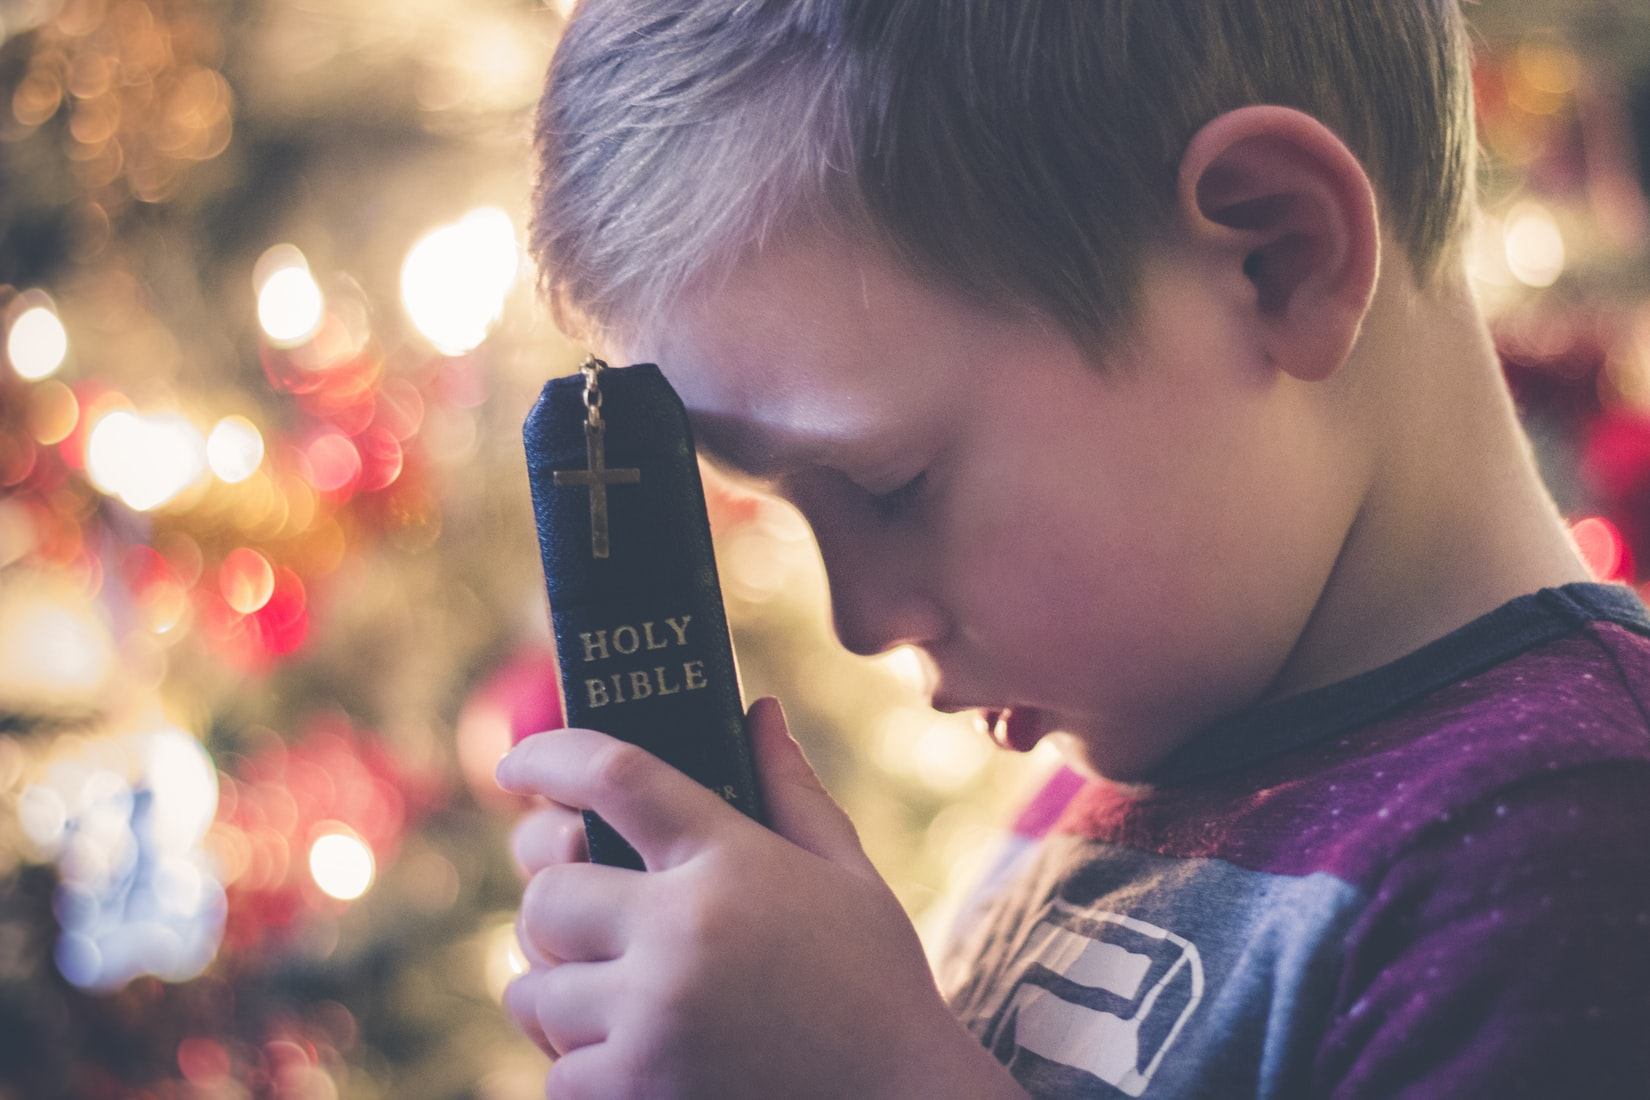 Young bog praying and holding holy bible against his face near Christmas lights